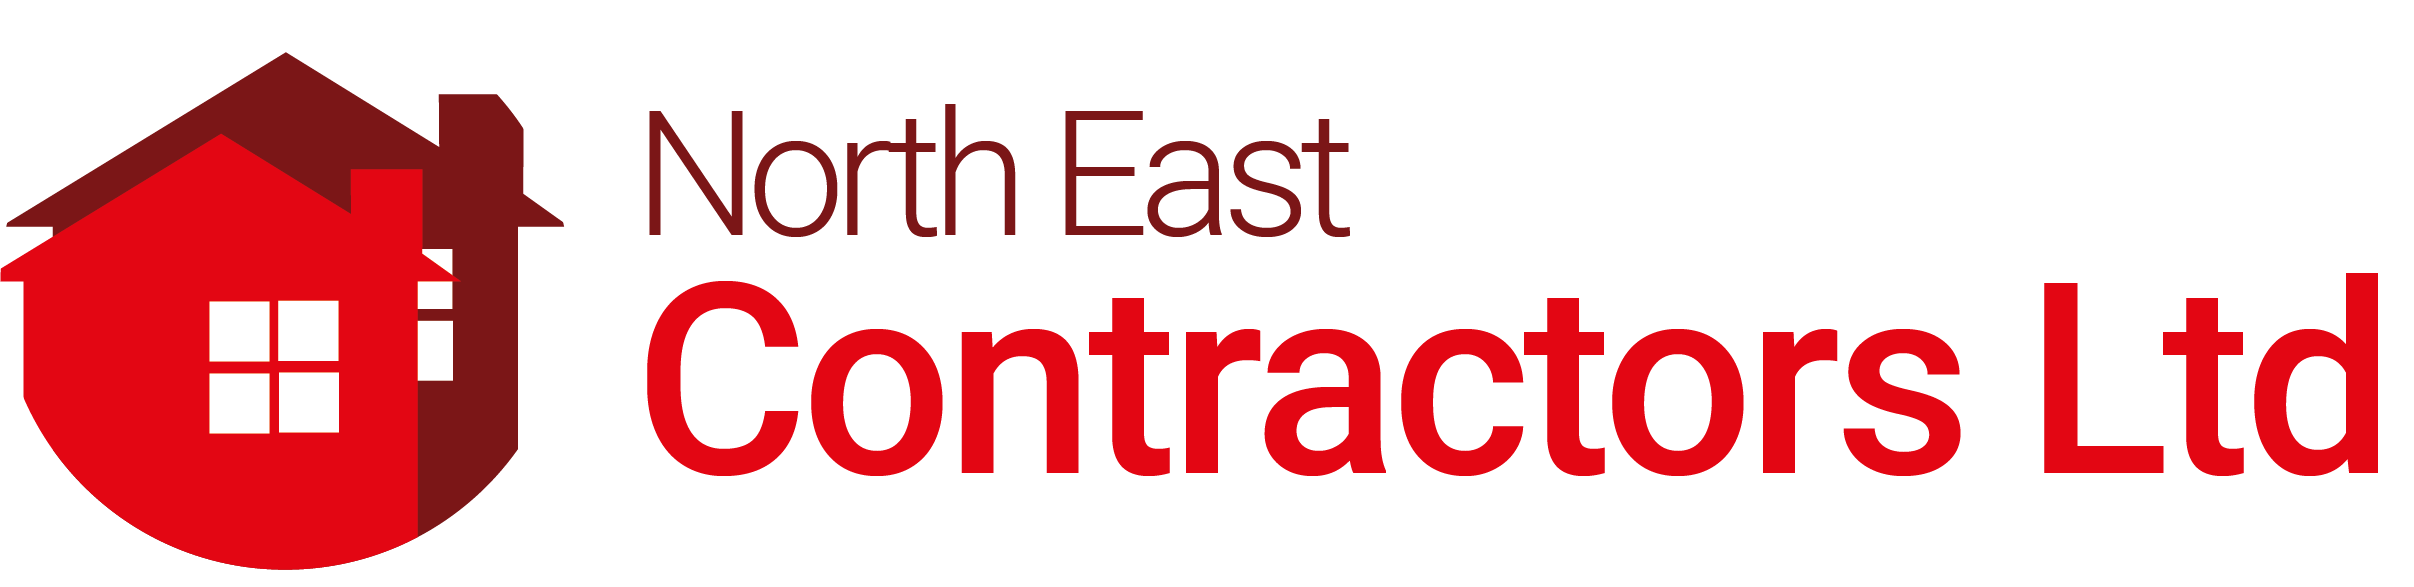 North East Contractors Ltd